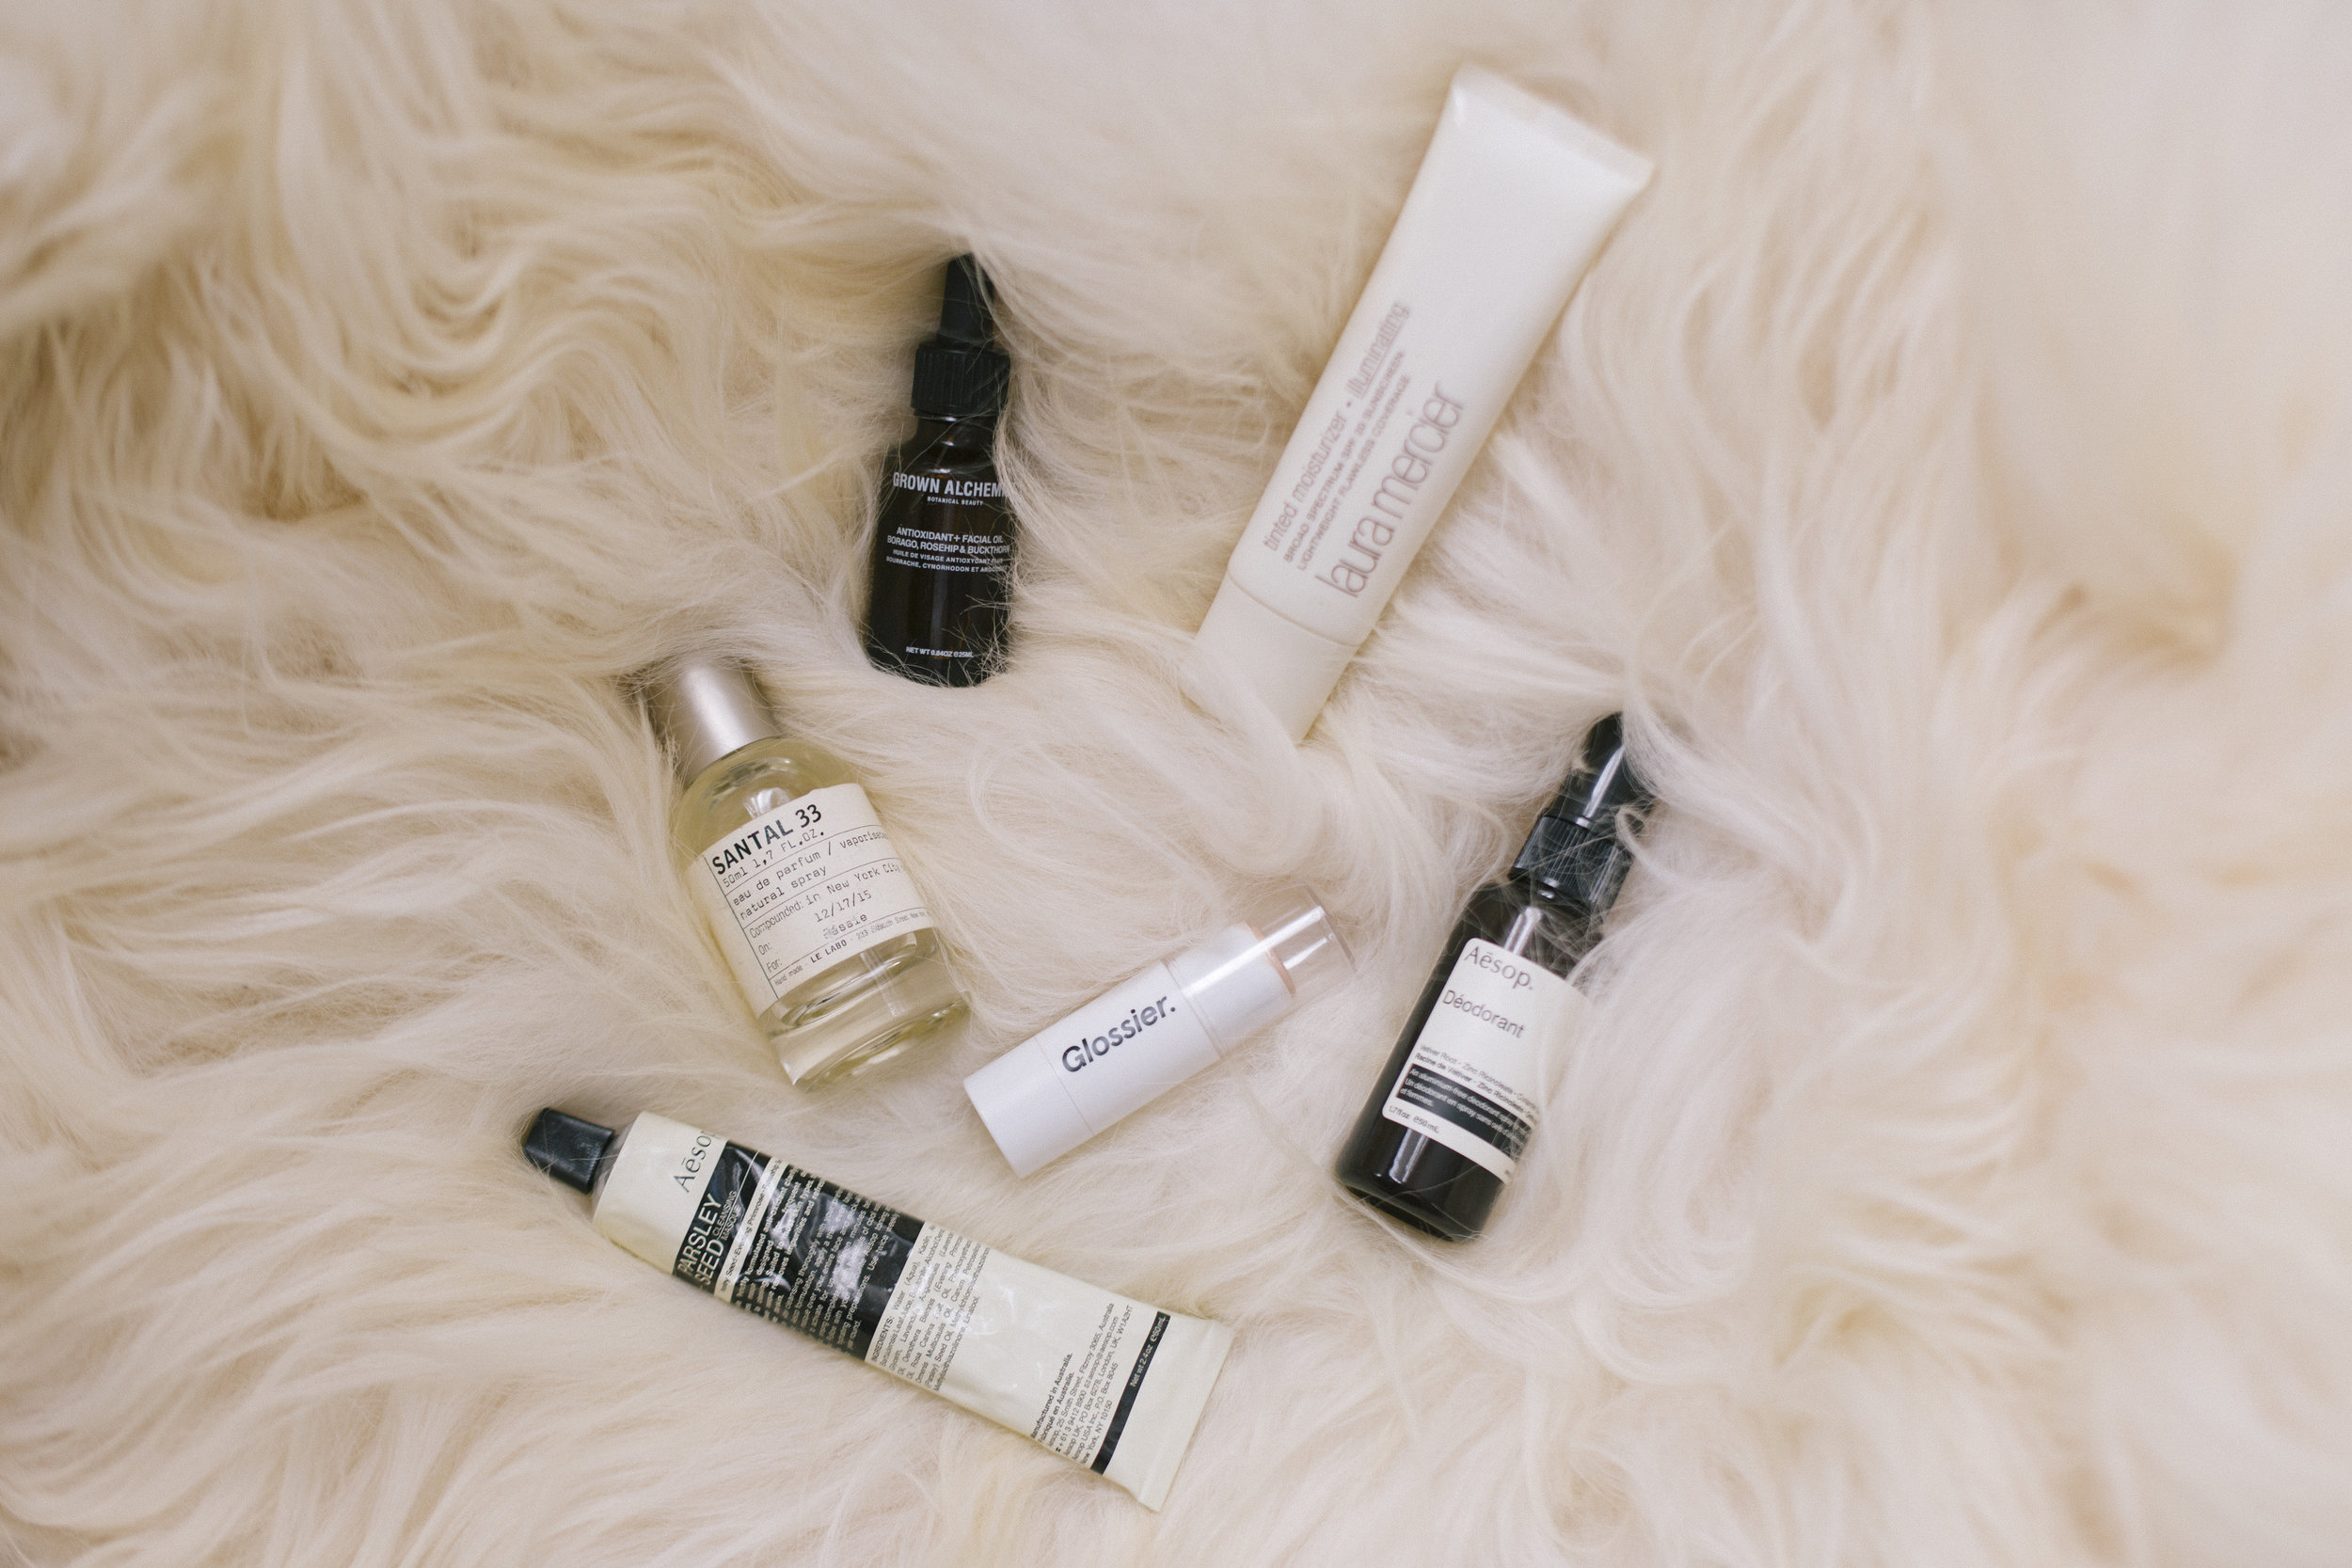 Jessie's favorite beauty products